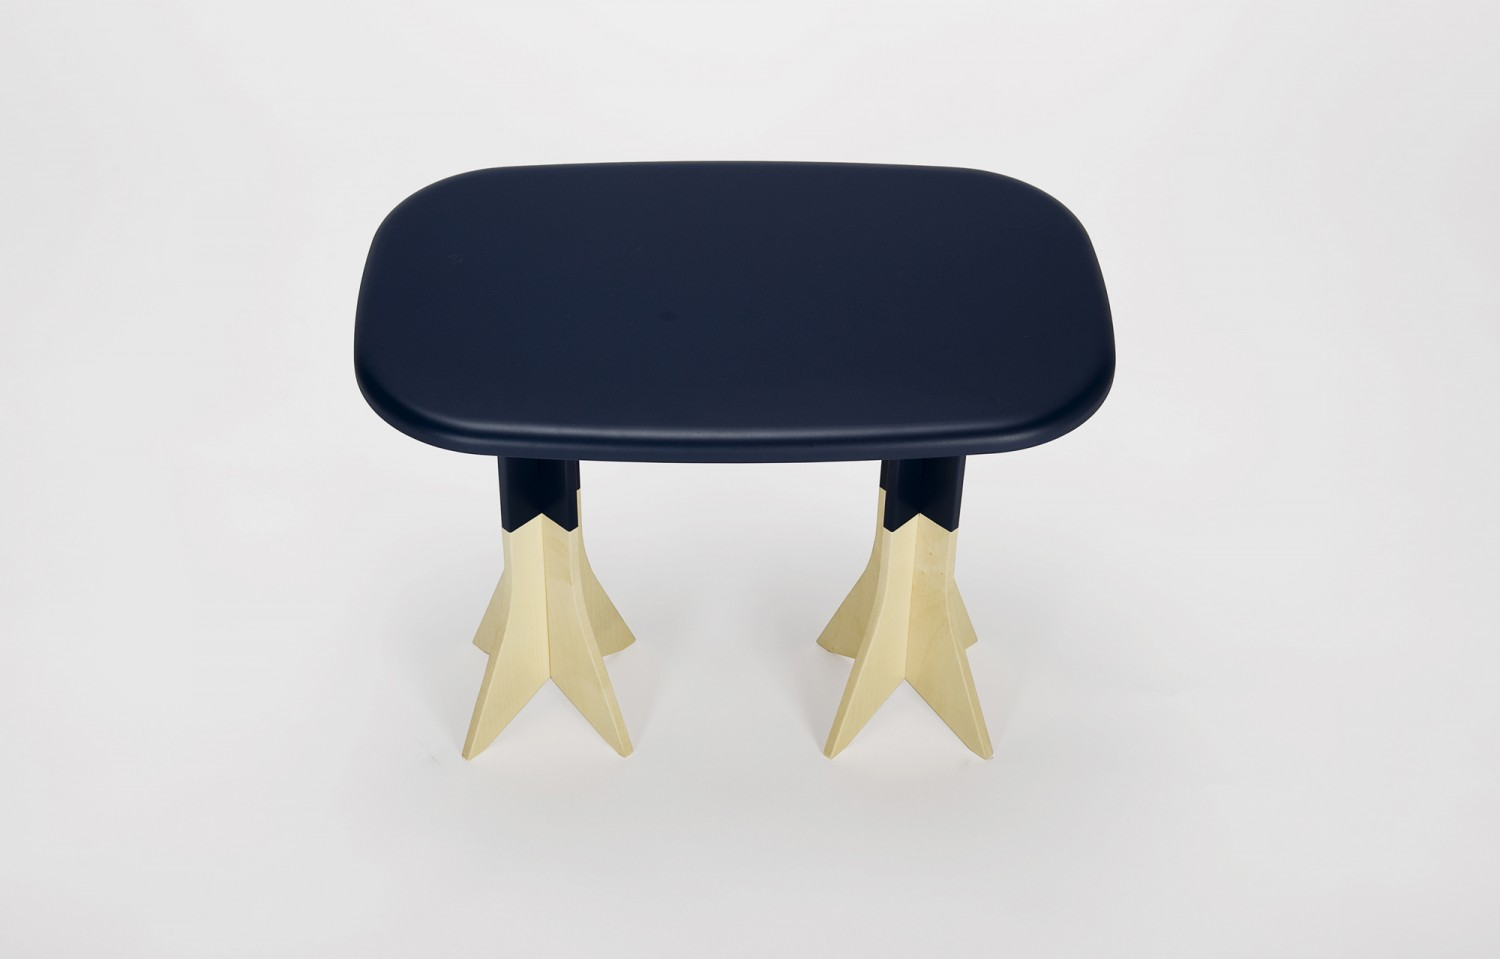 Pig on the wings stool or sidetable by Gentle Giants - on flodeau.com 1